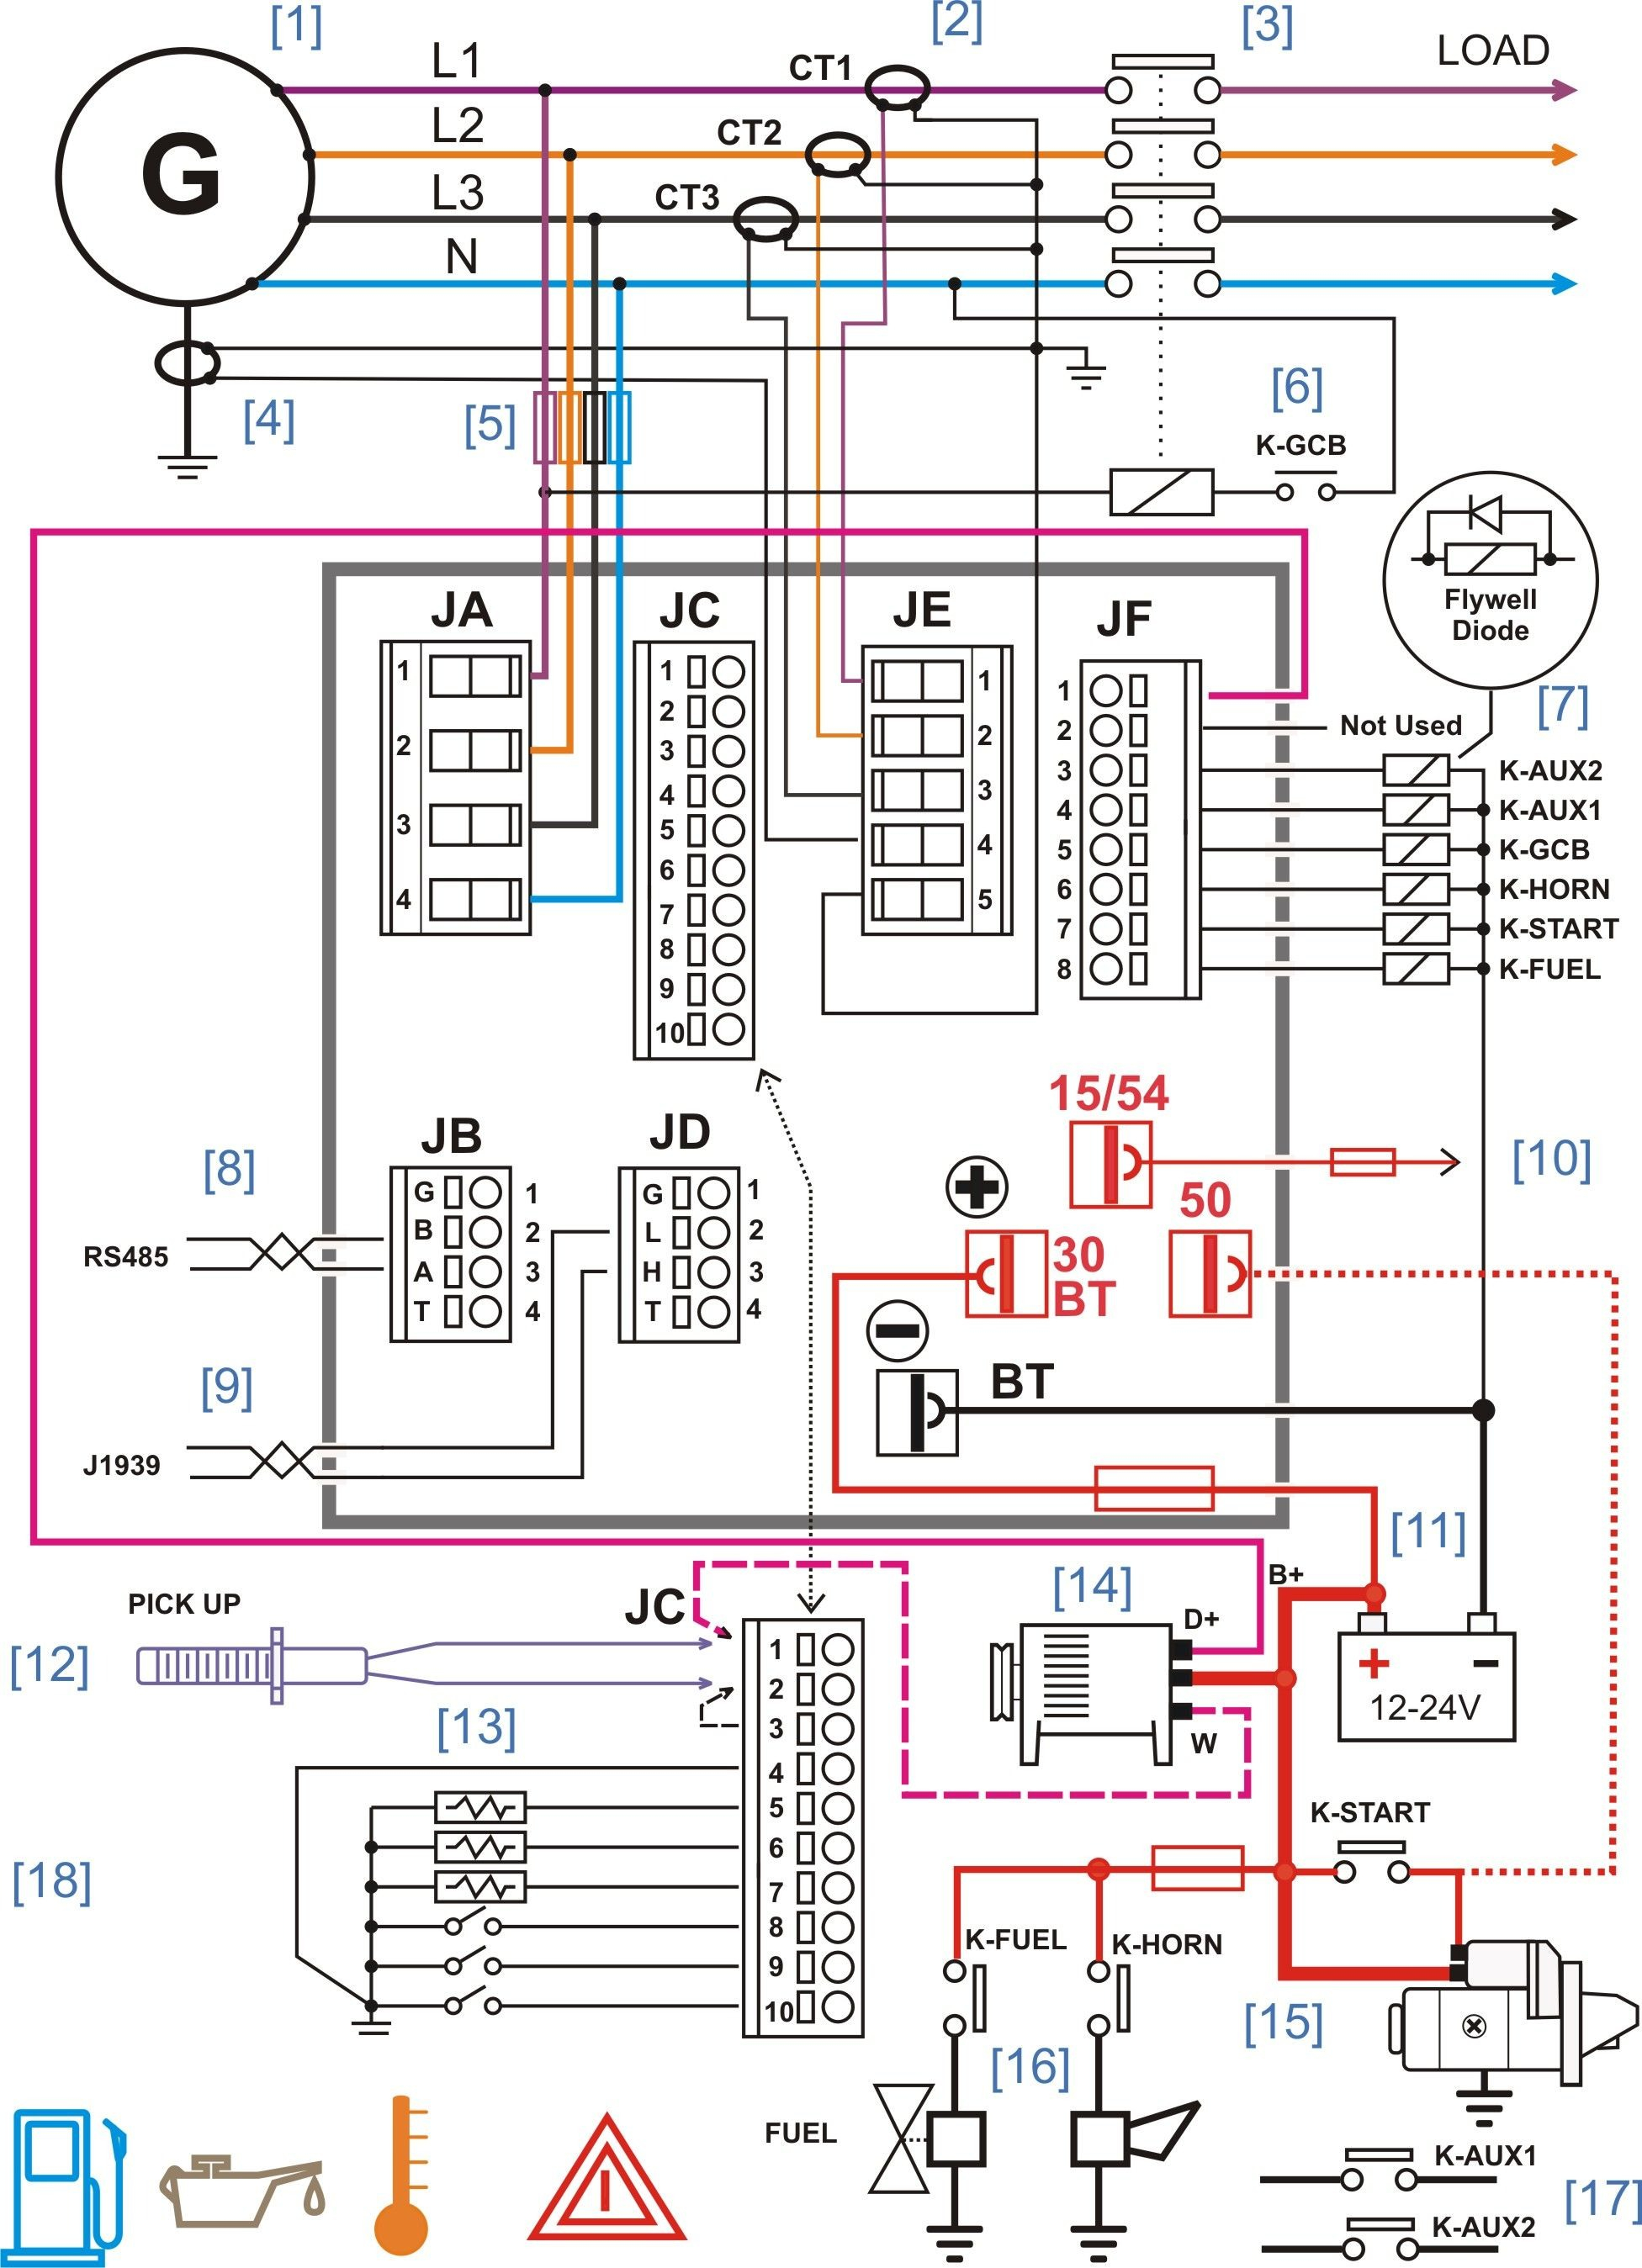 residential service panel wiring diagram general wiring diagram rh velvetfive co uk  residential power panel wiring diagram